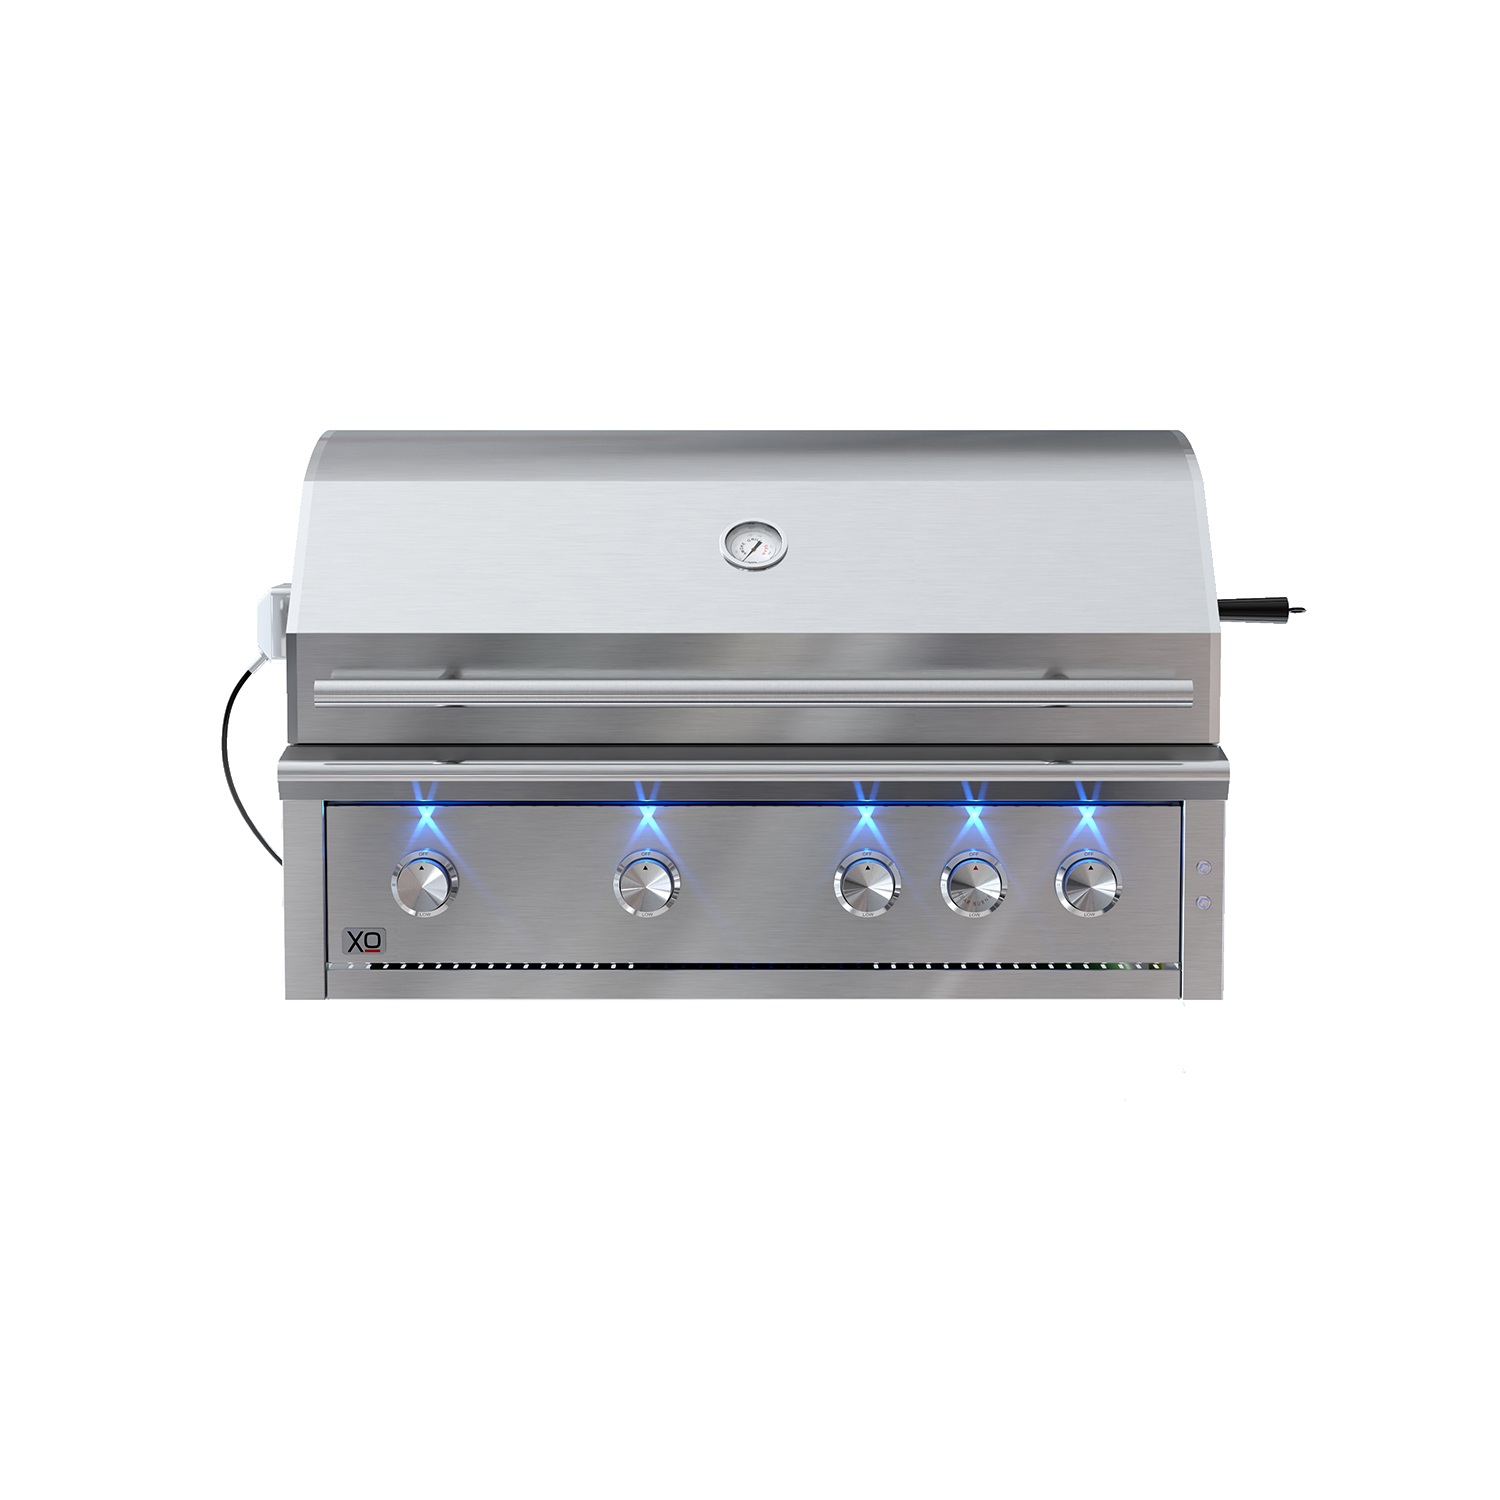 XO Appliances 42 in Grill 4 Burner w/ Rotiss Burner  - LP Gas